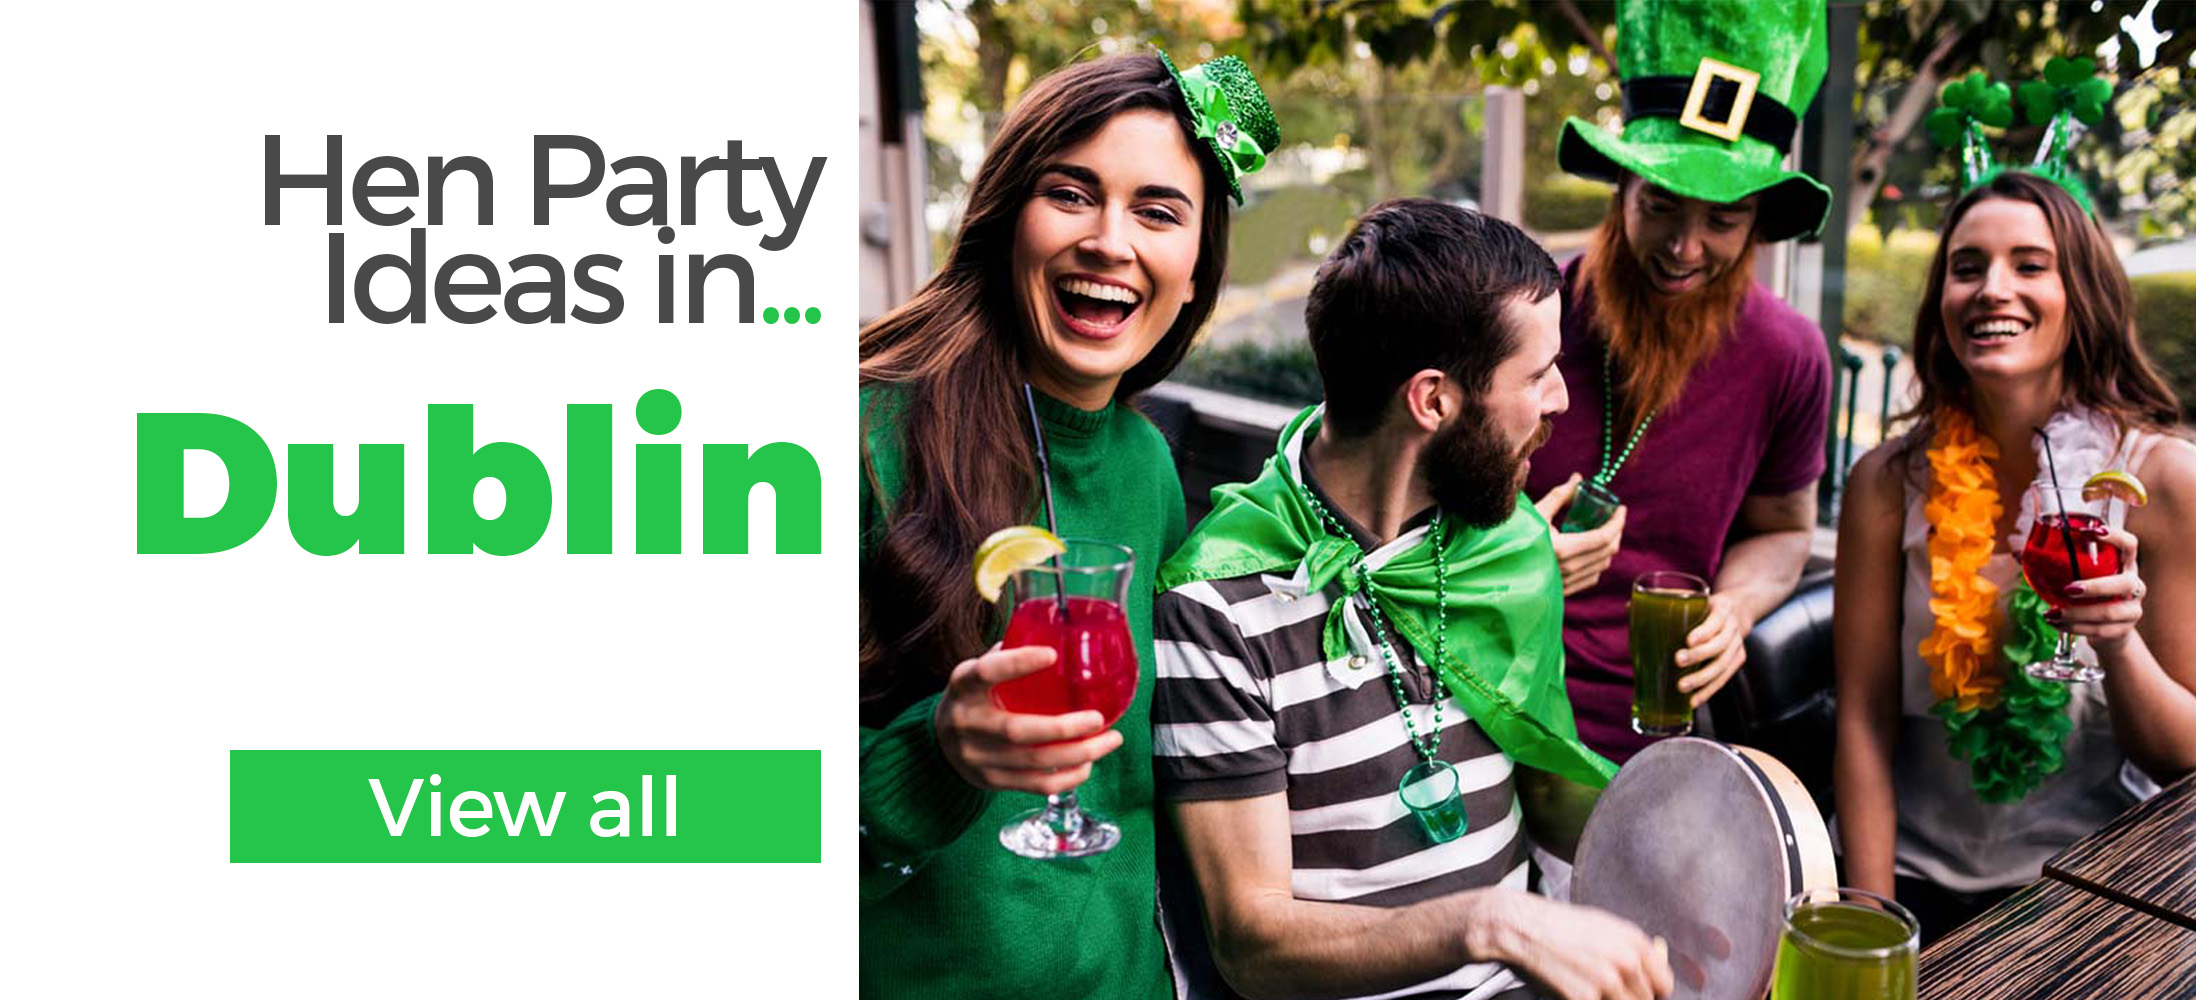 Hen Party Ideas in Dublin